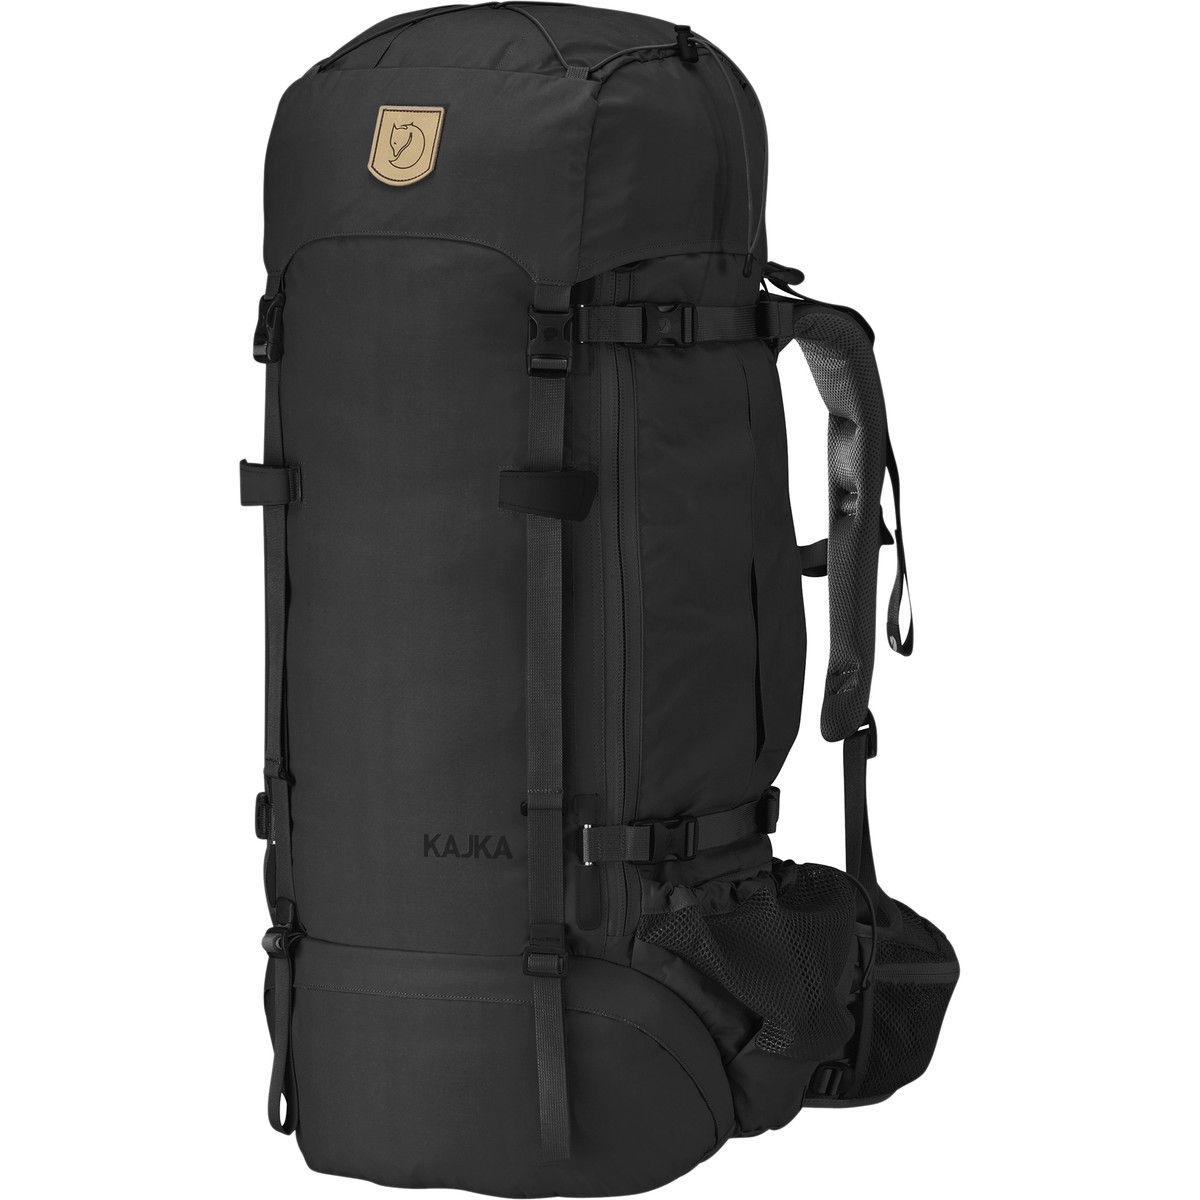 photo: Fjallraven Men's Kajka 75 expedition pack (70l+)